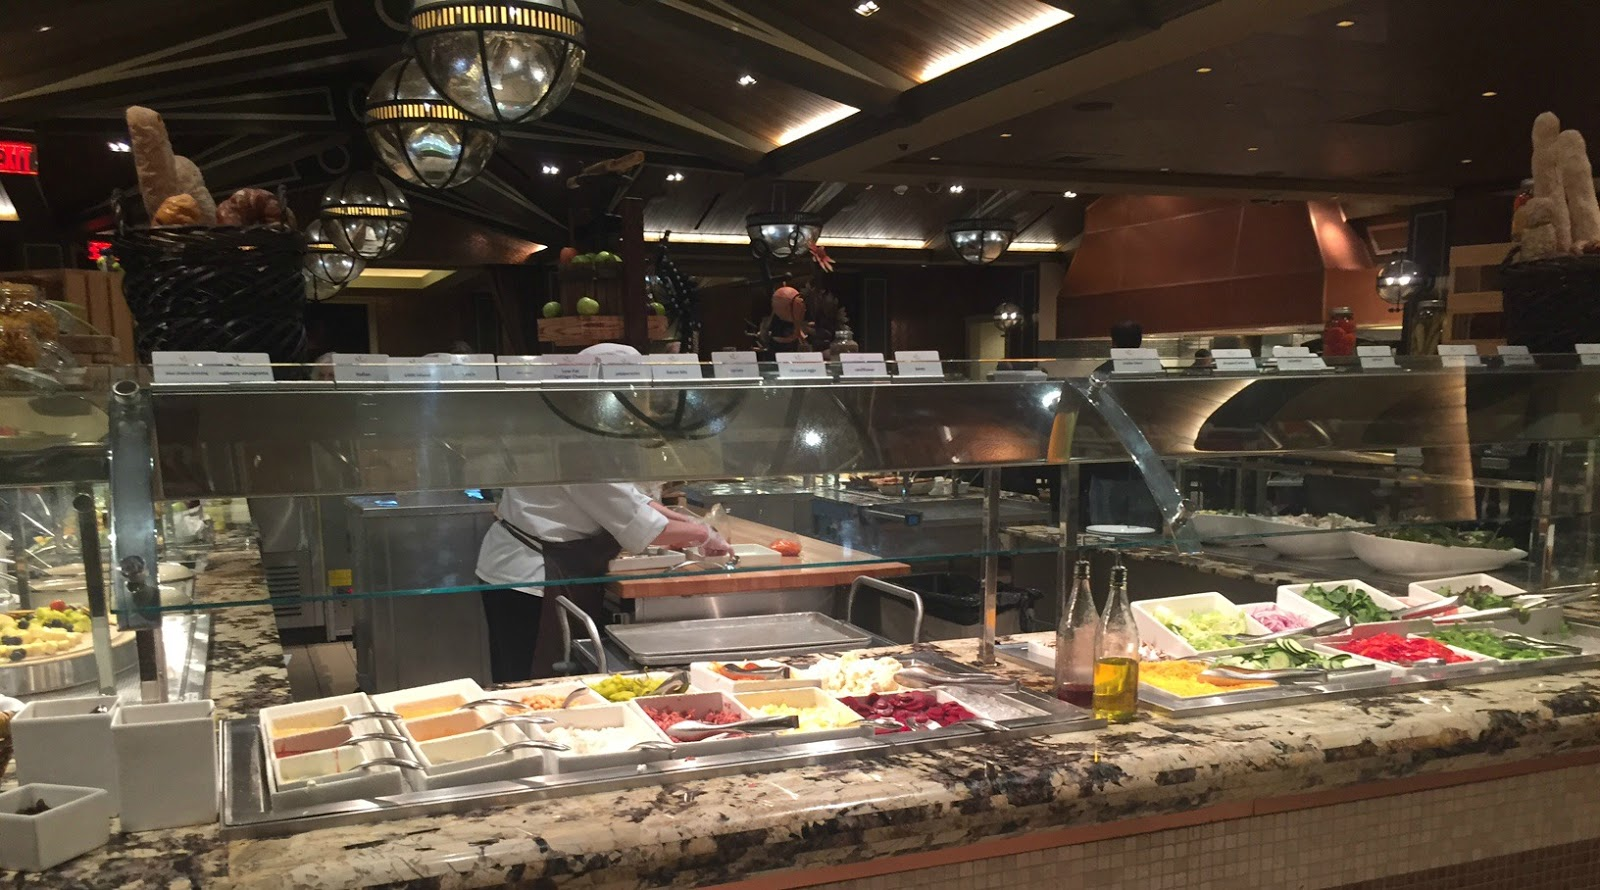 restaurant review giveaway market buffet at belterra park the rh thefoodhussy com belterra casino buffet specials belterra casino buffet hours